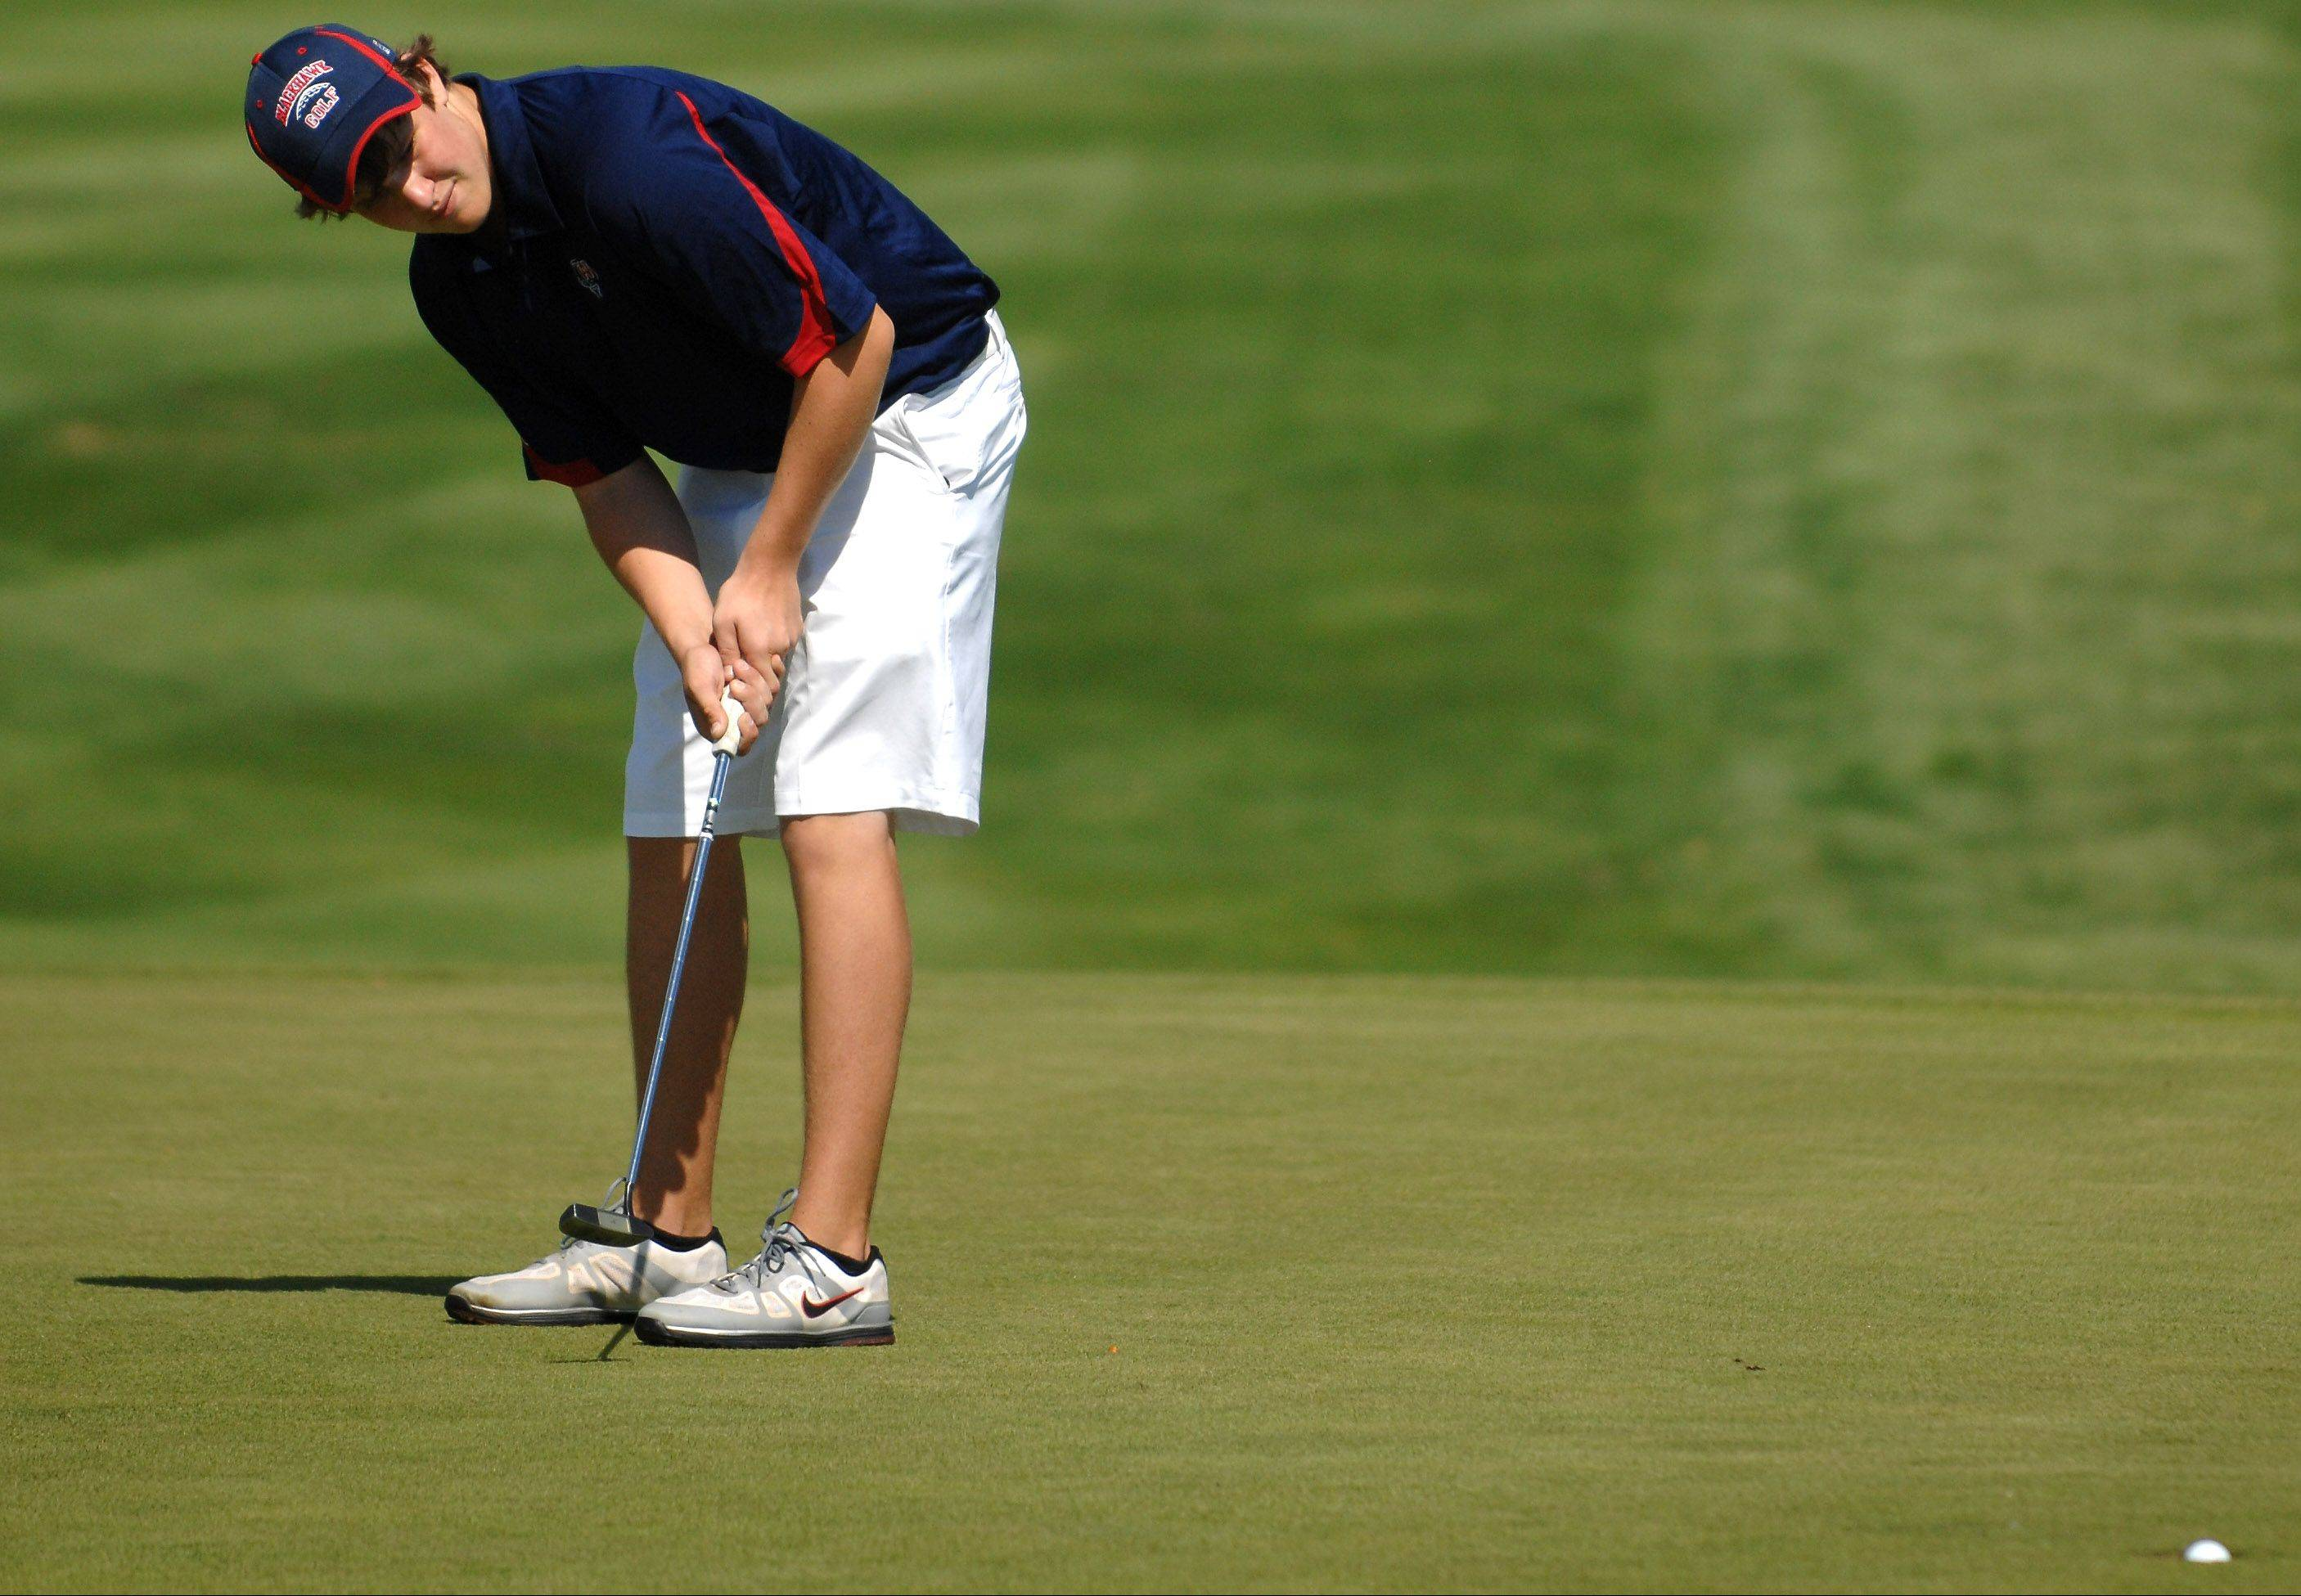 West Aurora's Blake Kauffmann watches his putt drop.